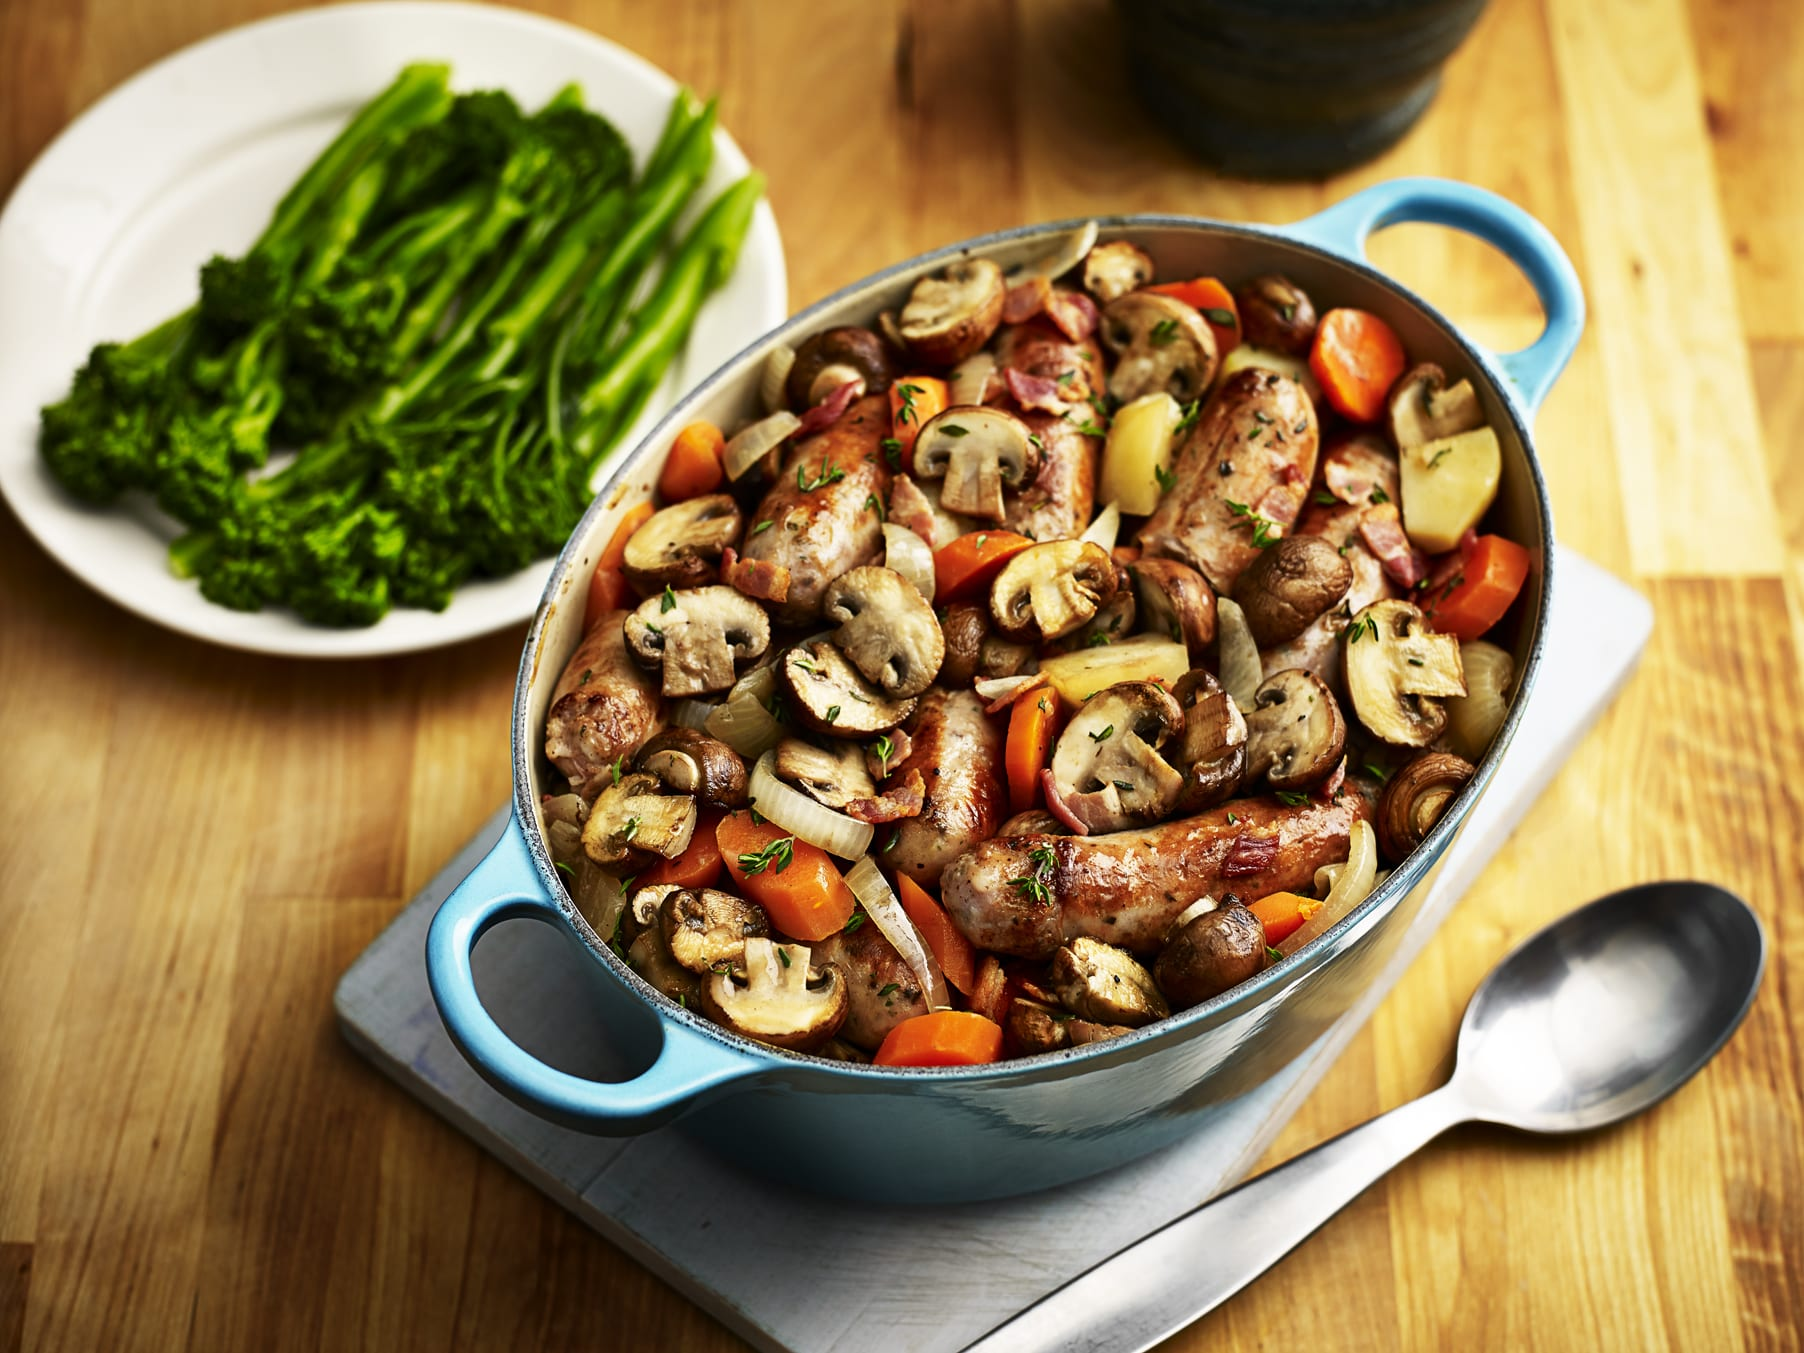 VegMasterclass: Mushroom and sausage casserole - Healthy : Healthy